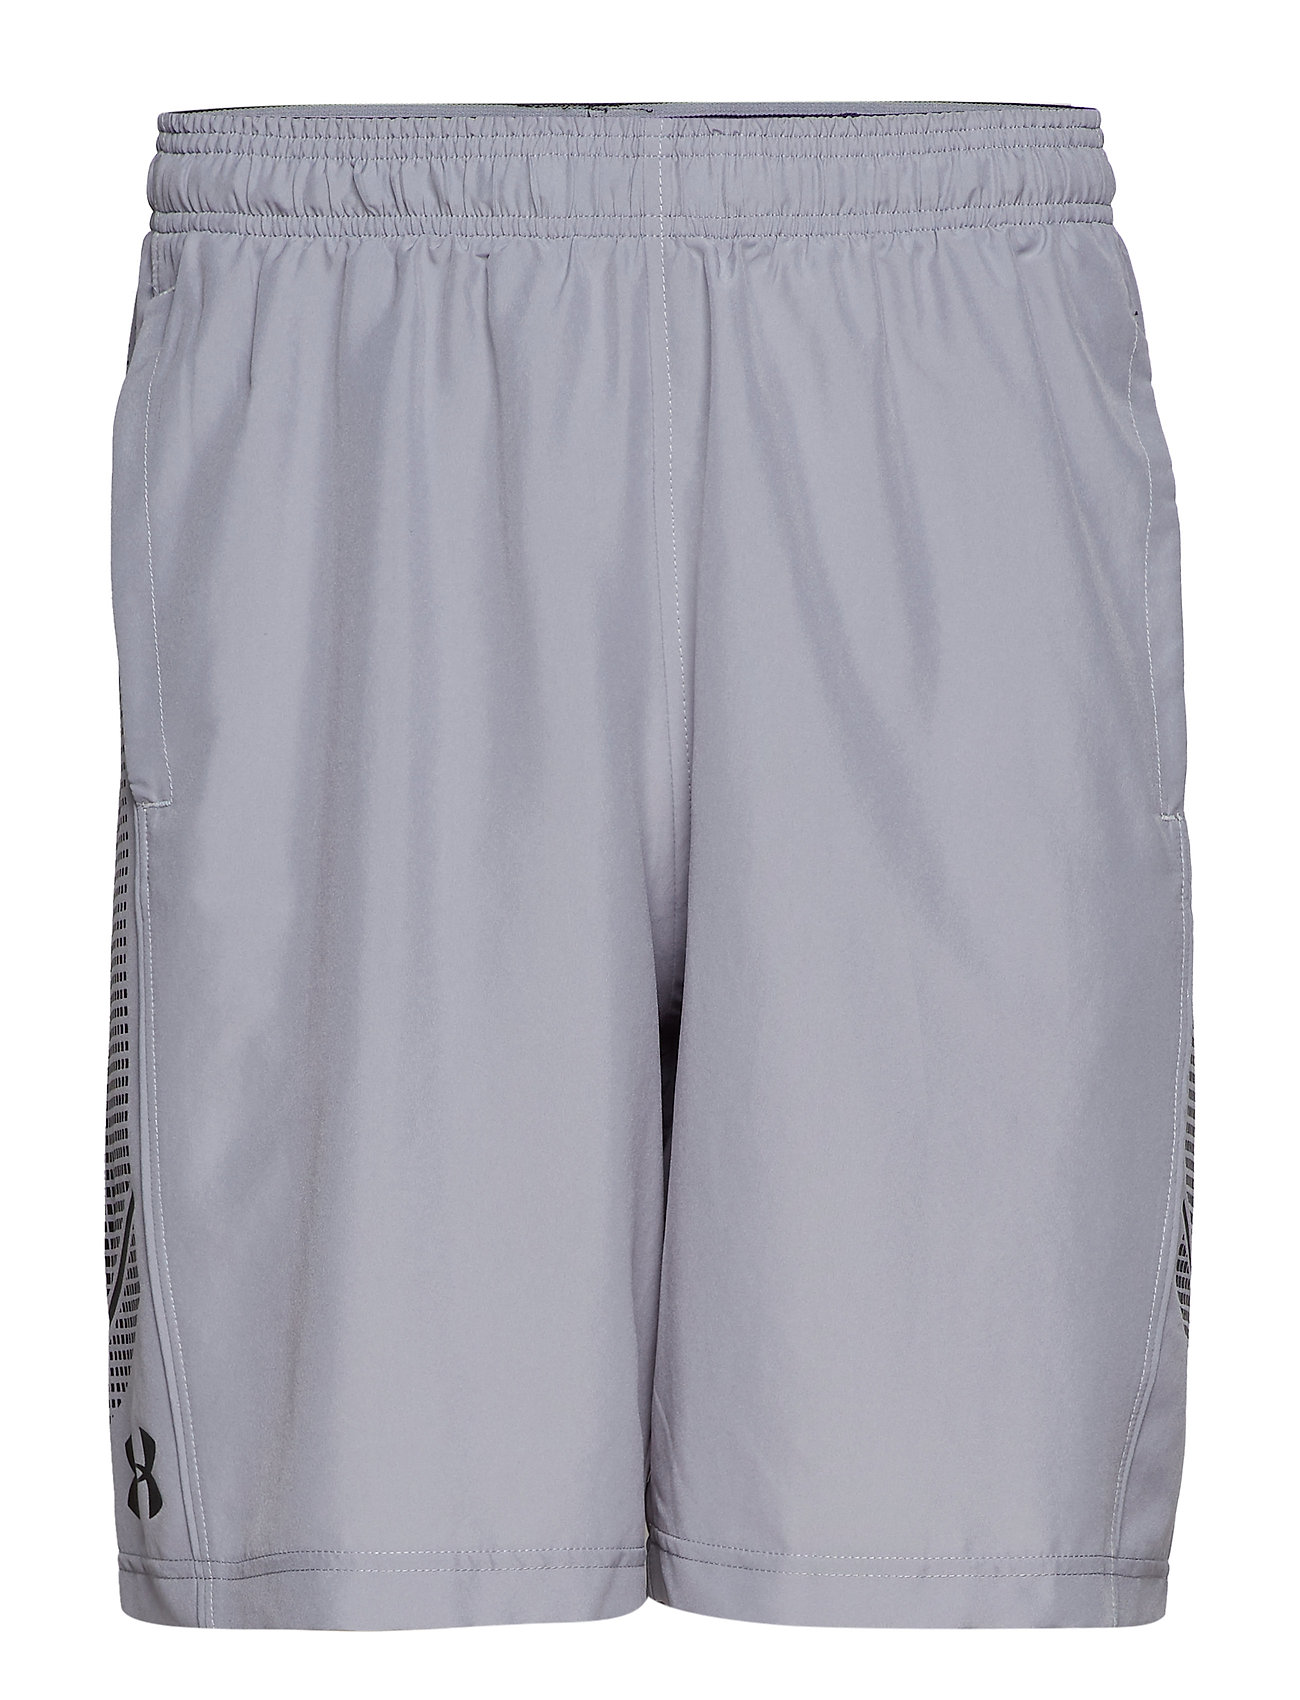 Armour Graphic Woven ShortsteelUnder Graphic Woven ShortsteelUnder n0vmwN8O